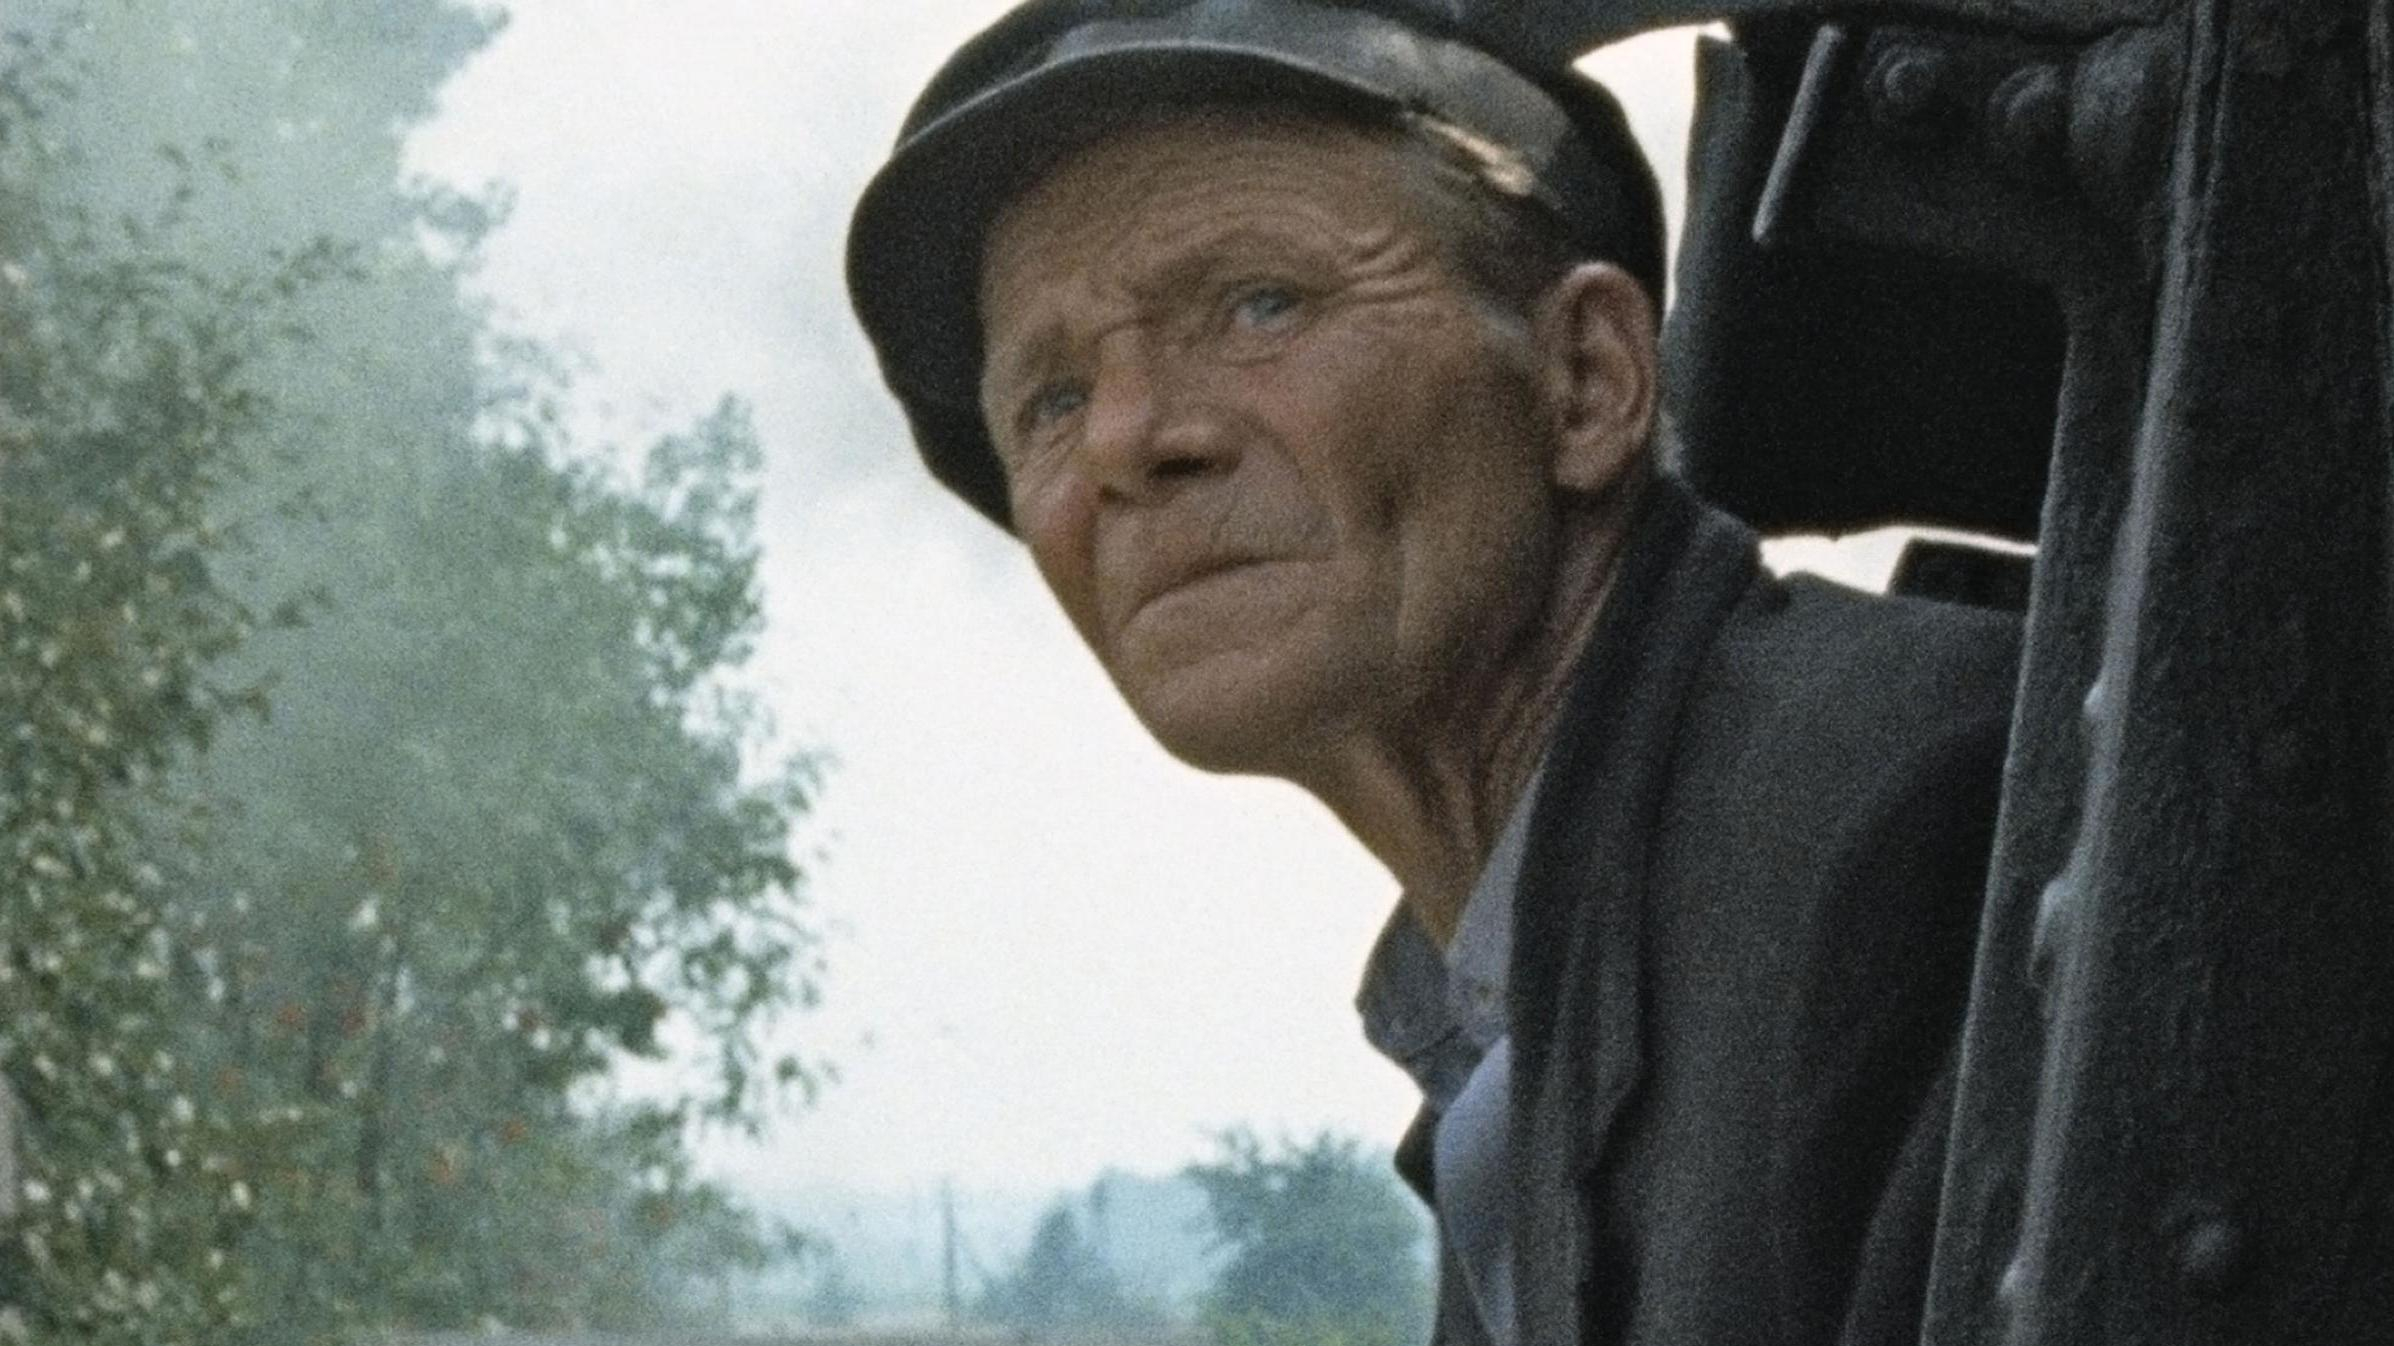 Shoah (Claude Lanzmann, 1985), France, 16mm, colour, sound, 566 minutes